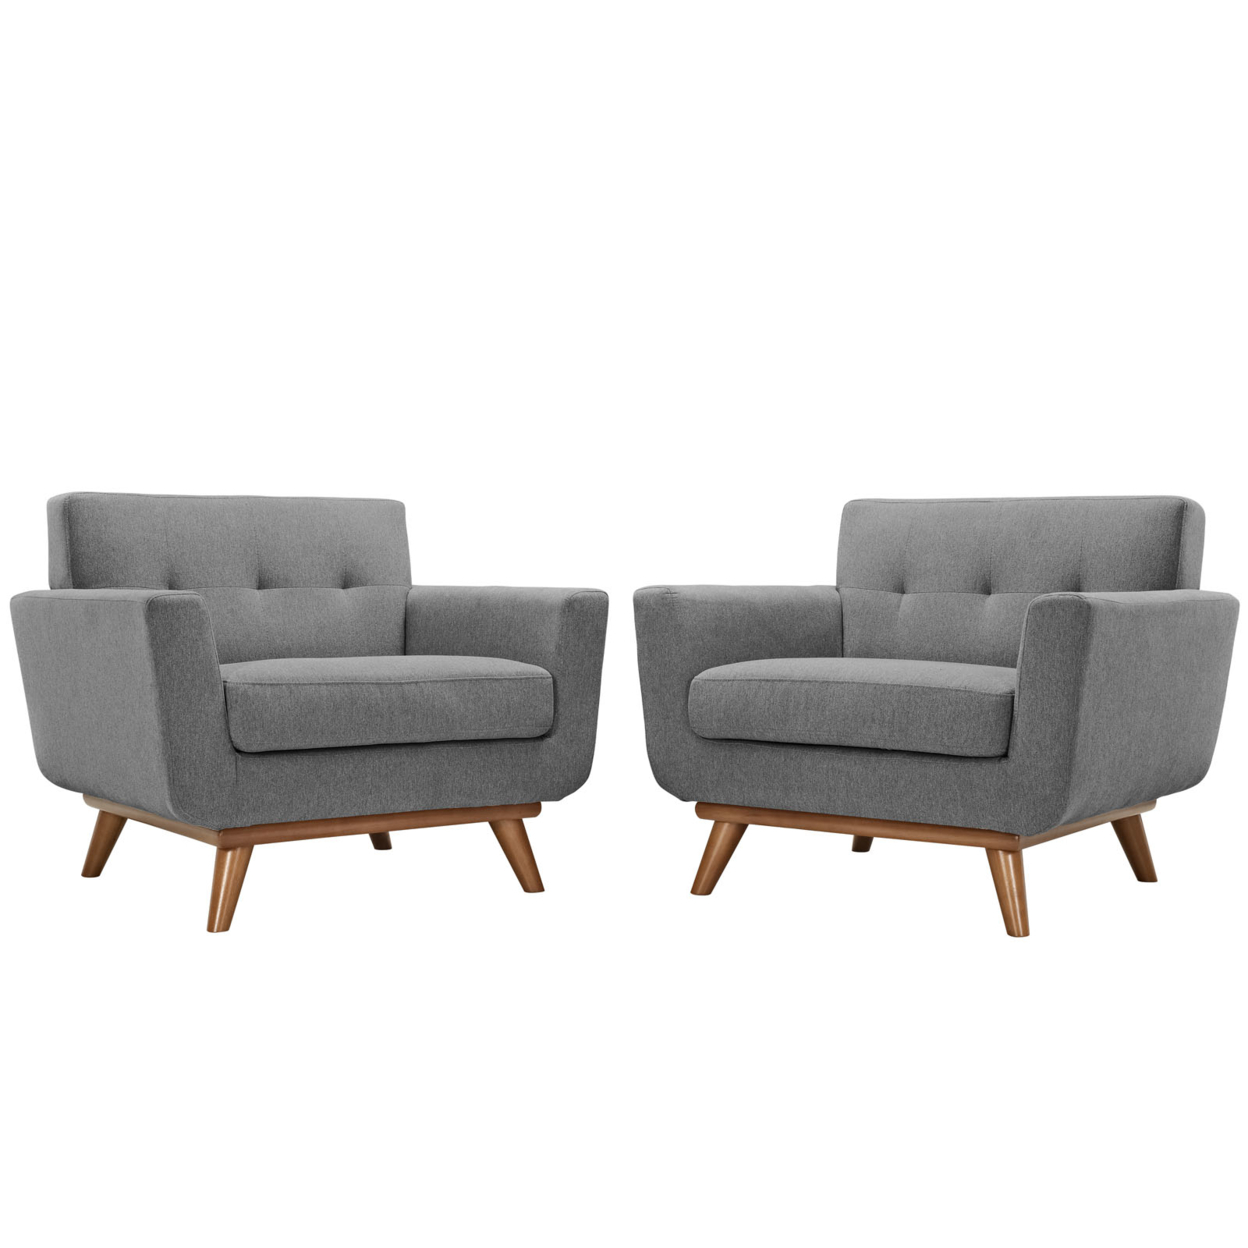 Engage Armchair Wood Set Of 2 , 1284-gry